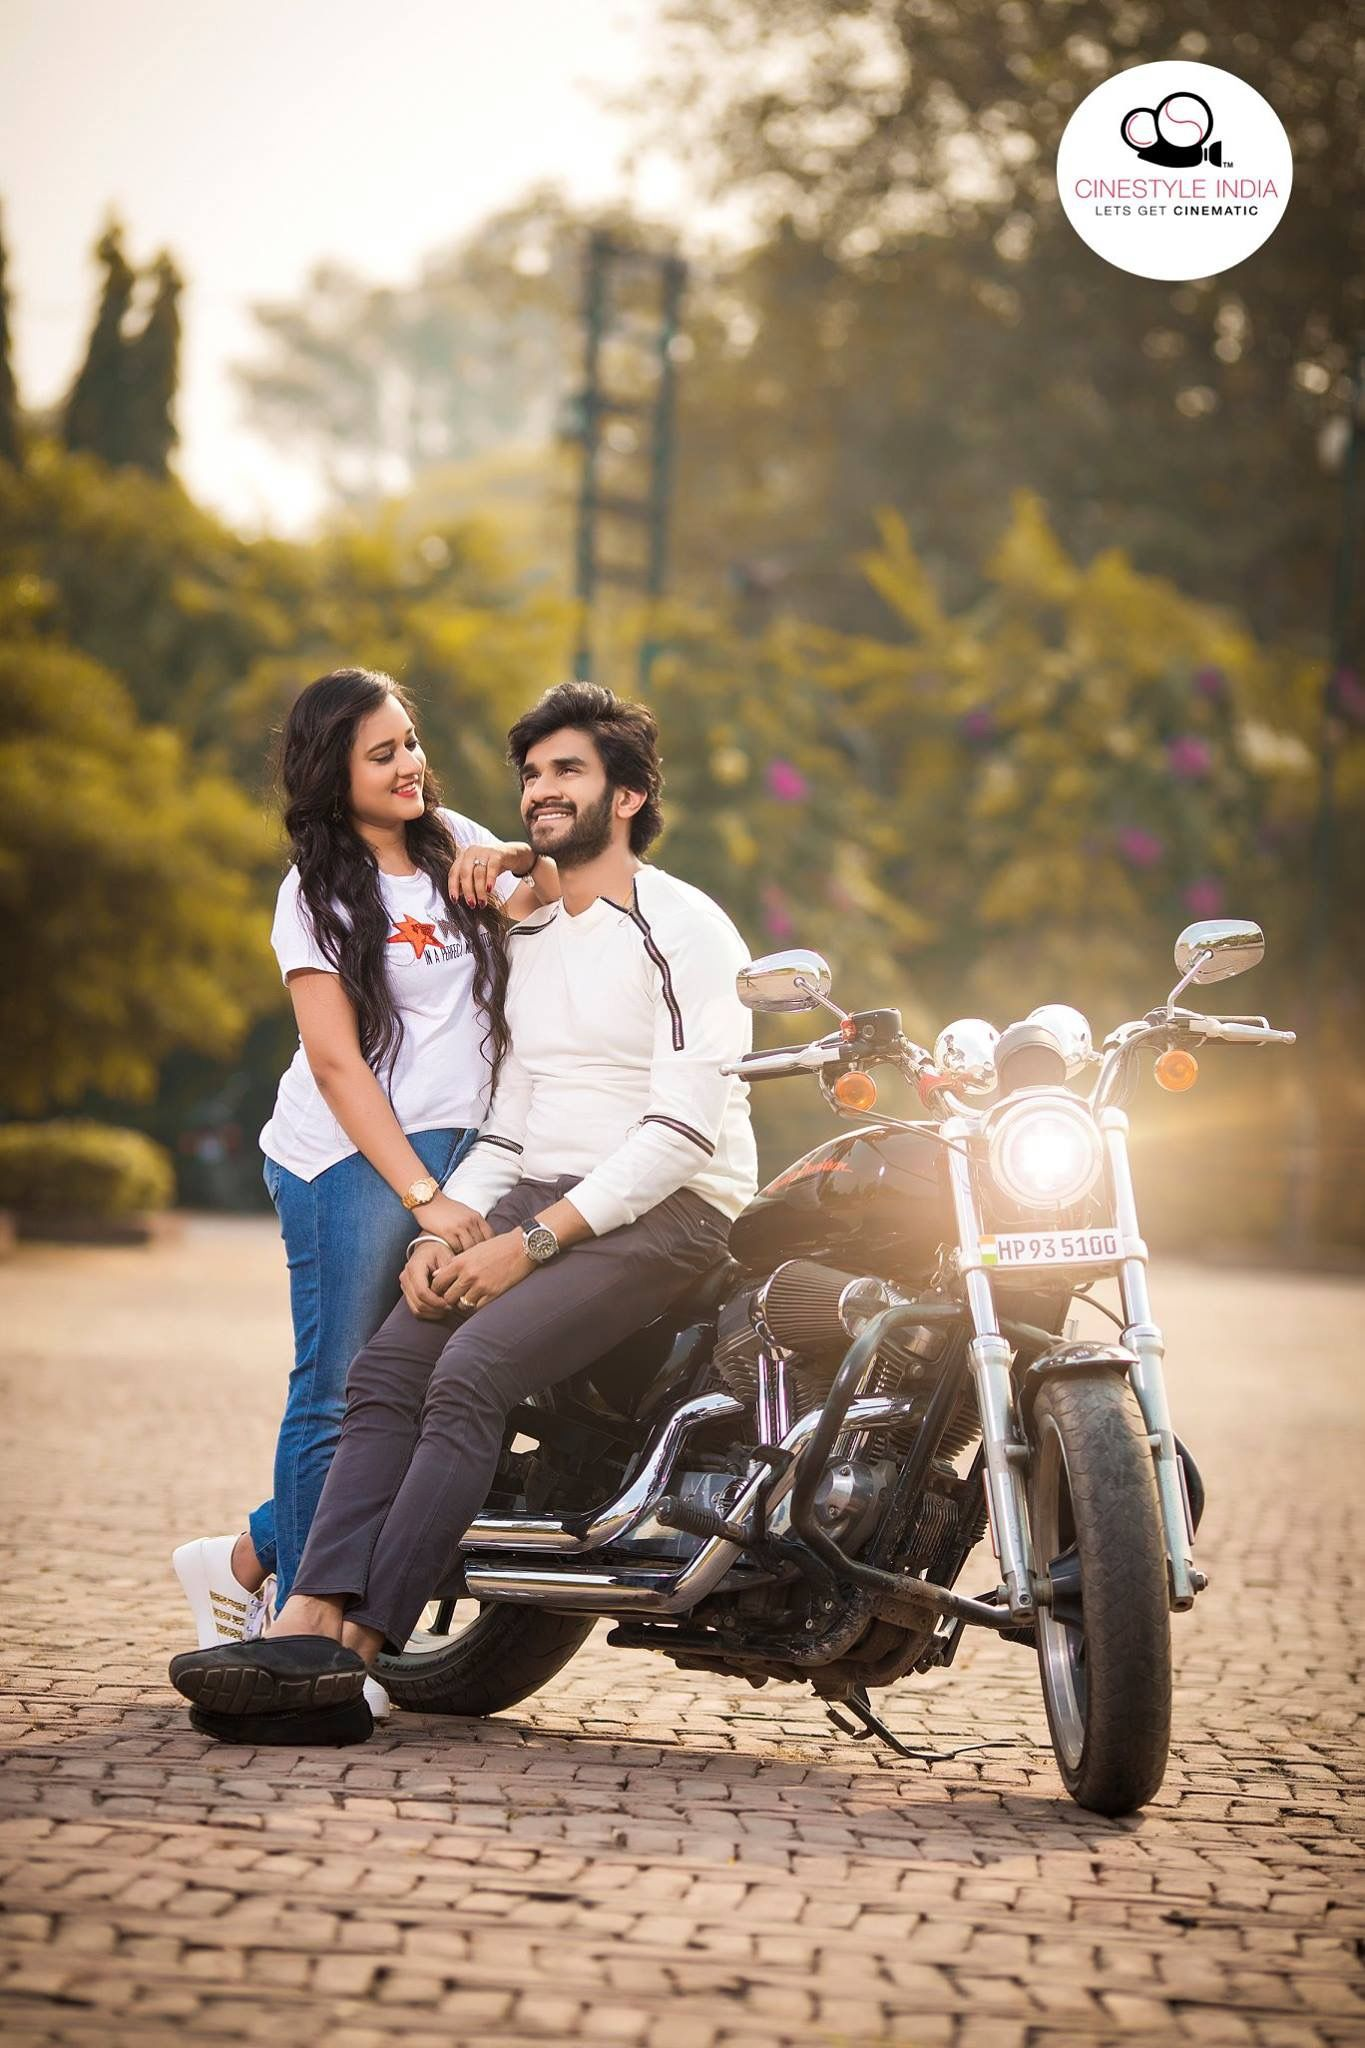 Very Attractive Couple Lookout Indian Wedding Photography Poses Pre Wedding Poses Couple Photography Poses